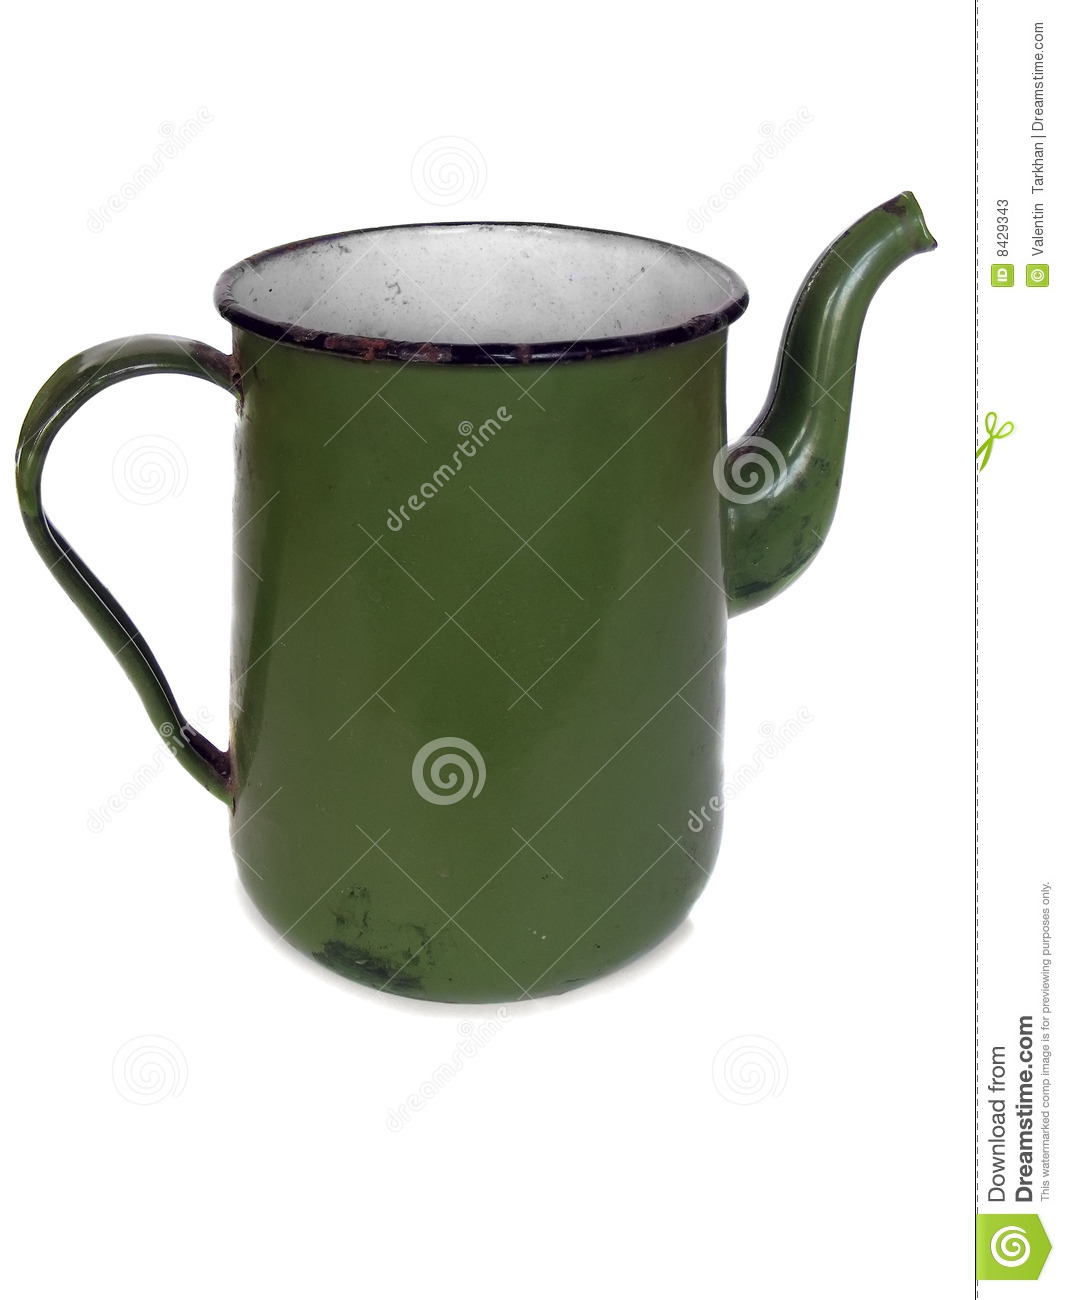 Vecchio coffee-pot verde